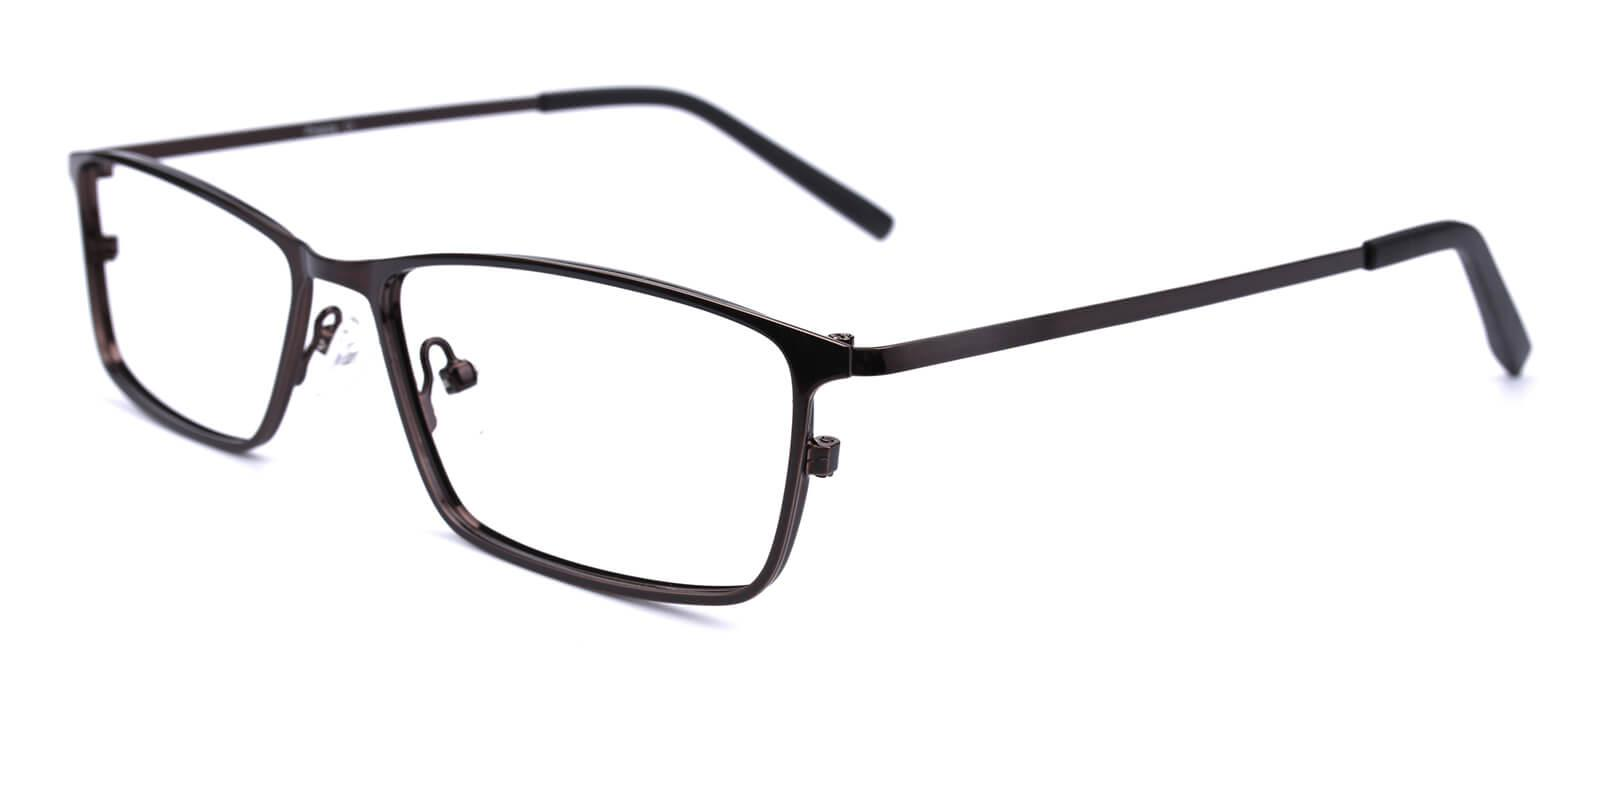 Wildfire-Brown-Rectangle-Metal-Eyeglasses-additional1